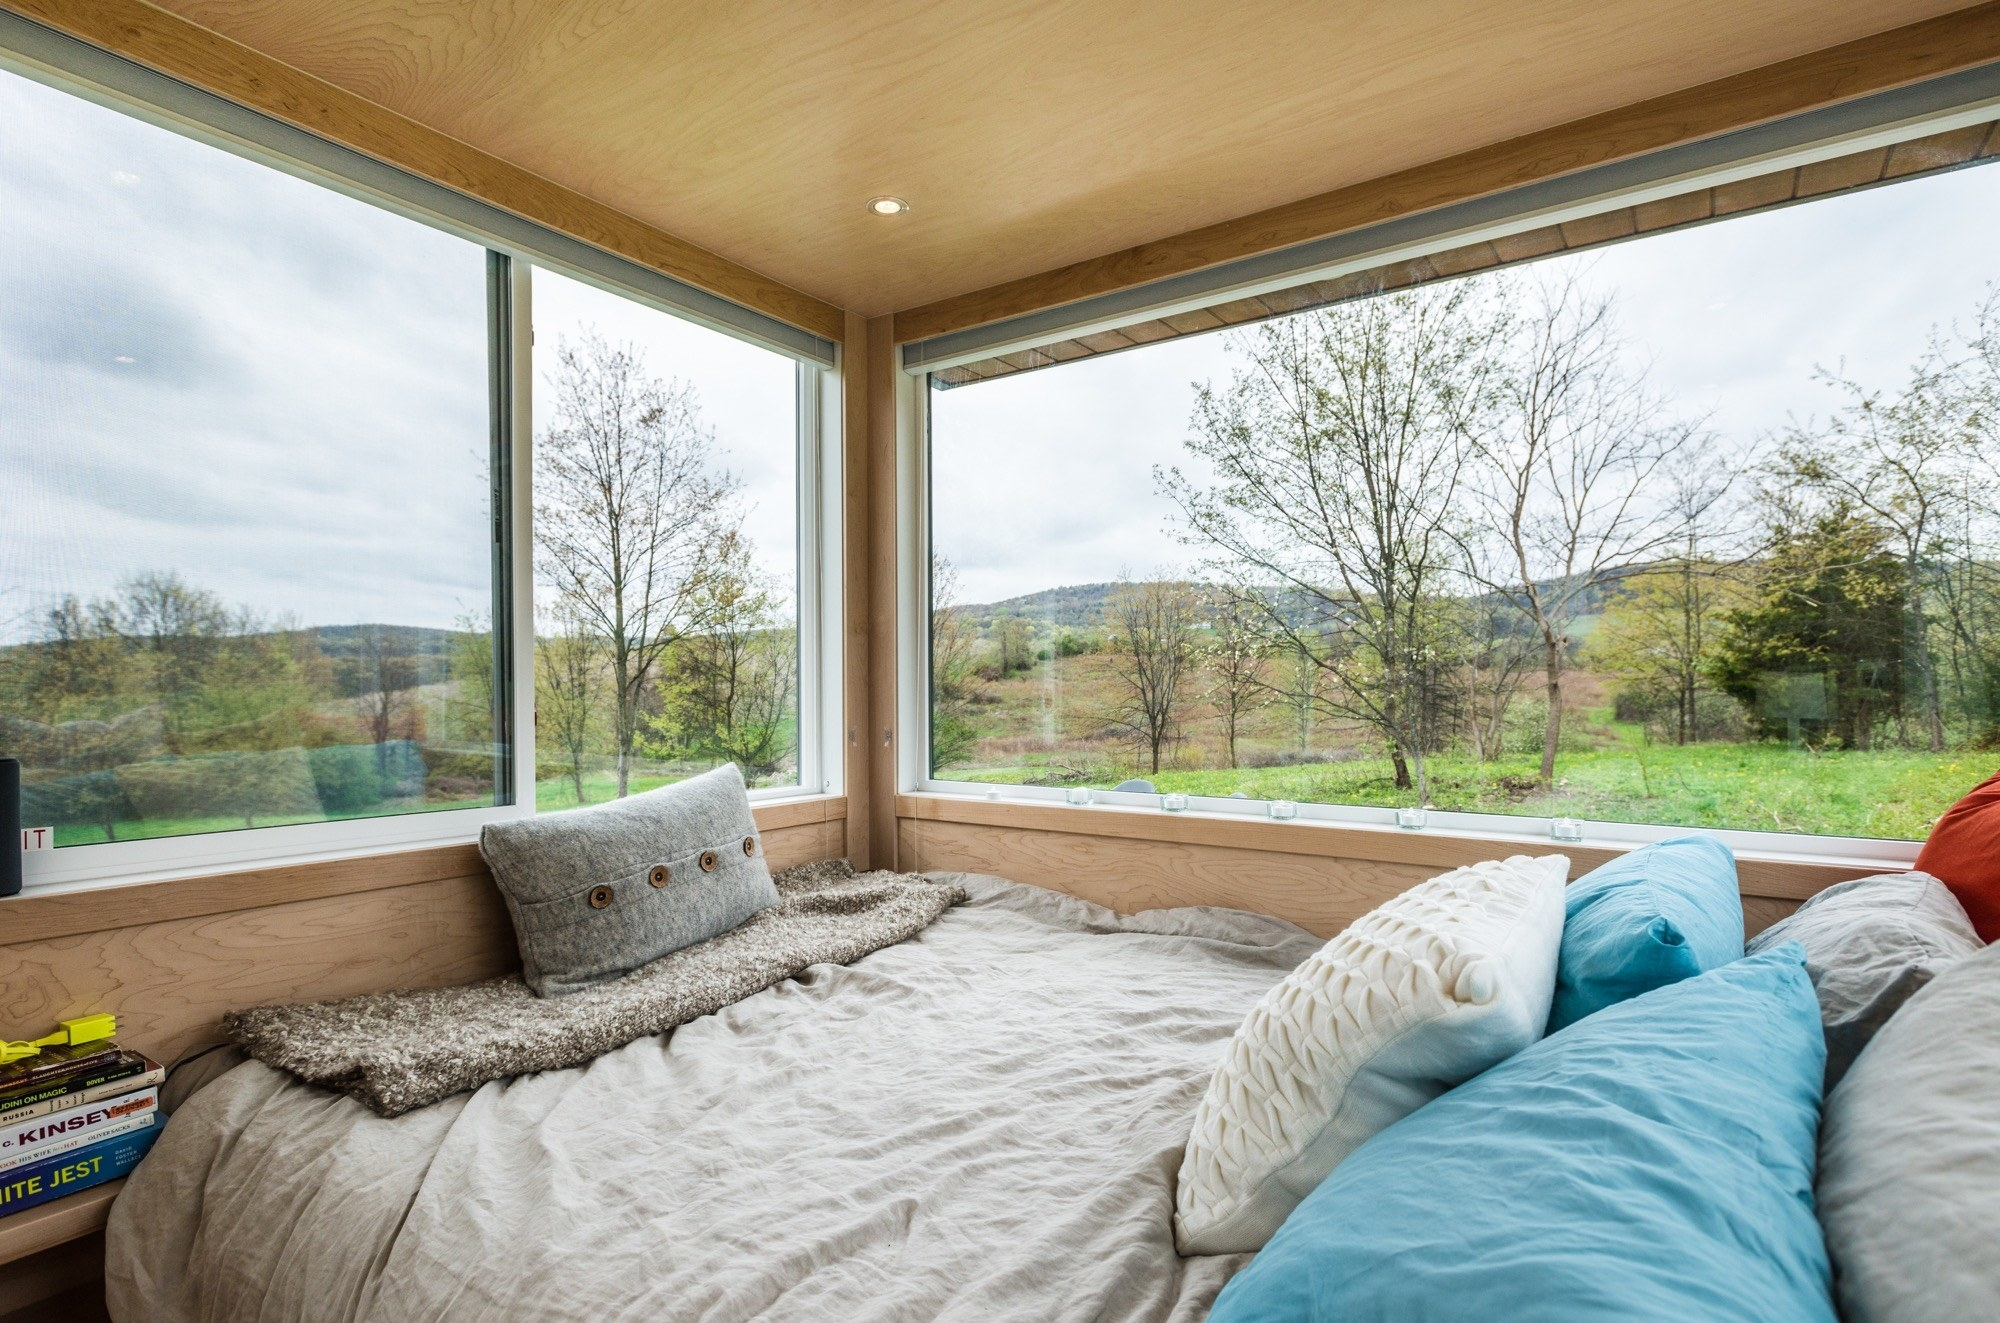 The interior of a glass-walled cabin with a bed covered in pillows. Out the window is nothing but trees